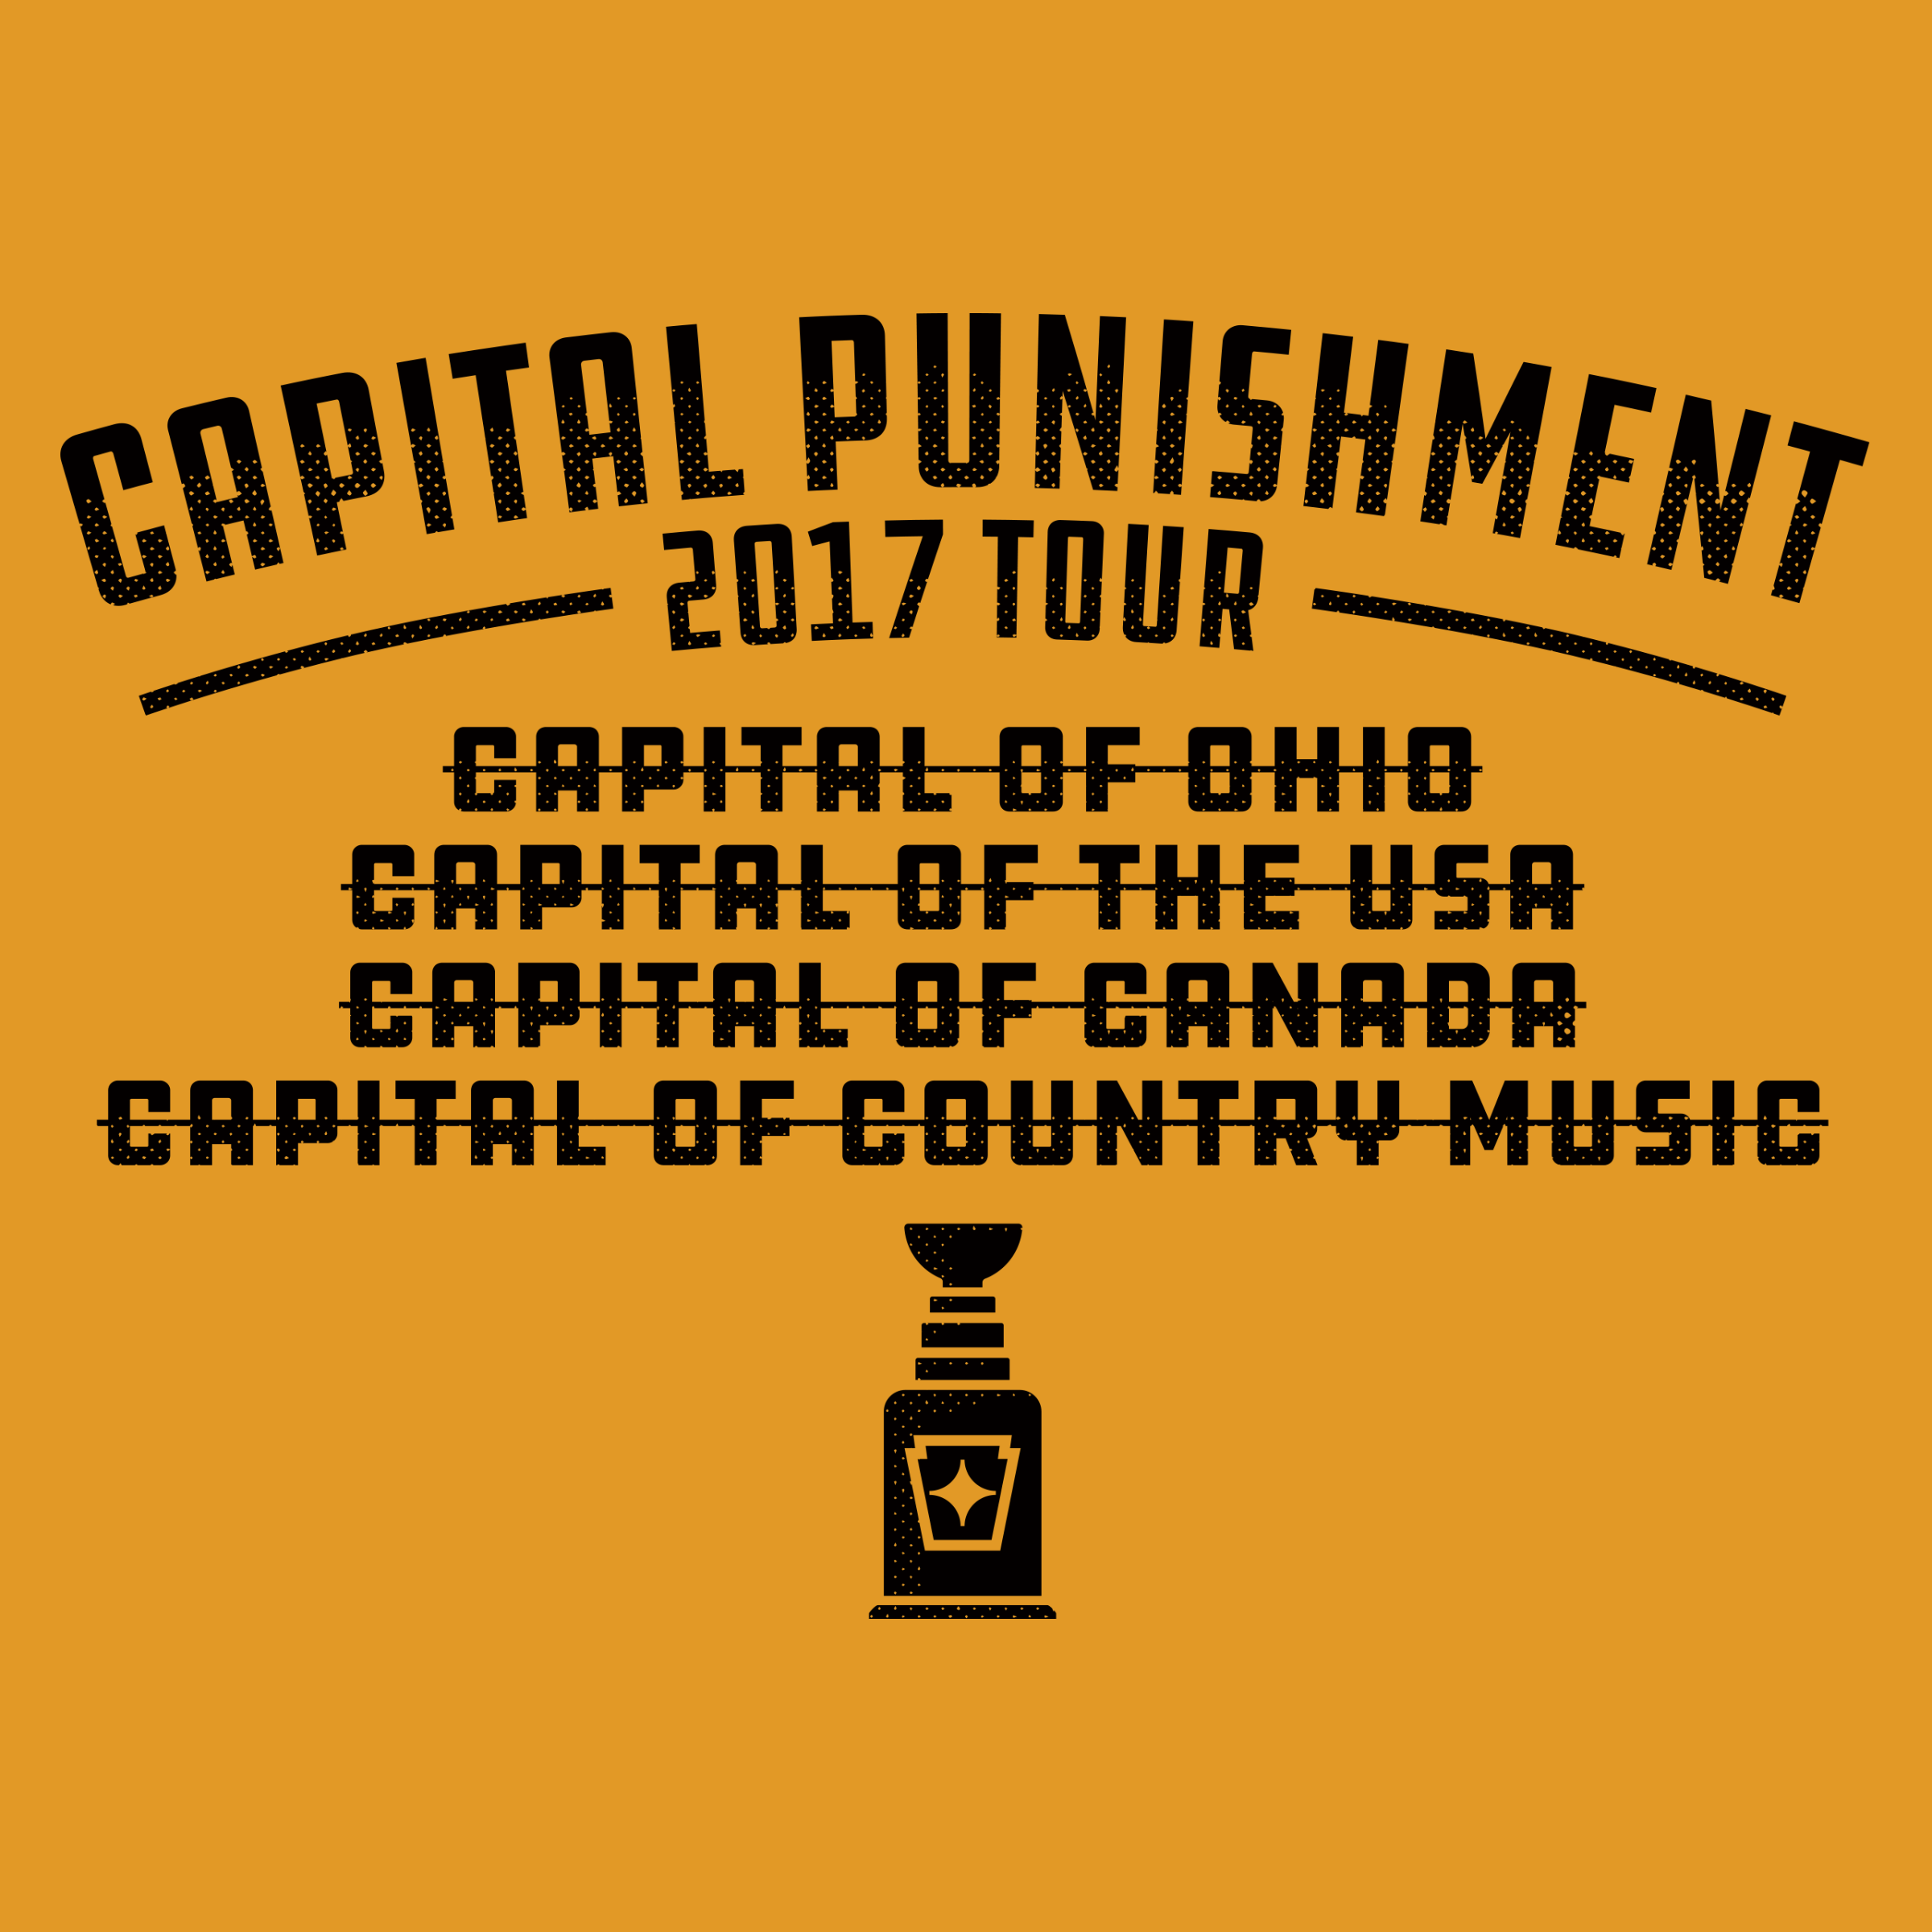 Capital Punishment: 2017 Tour